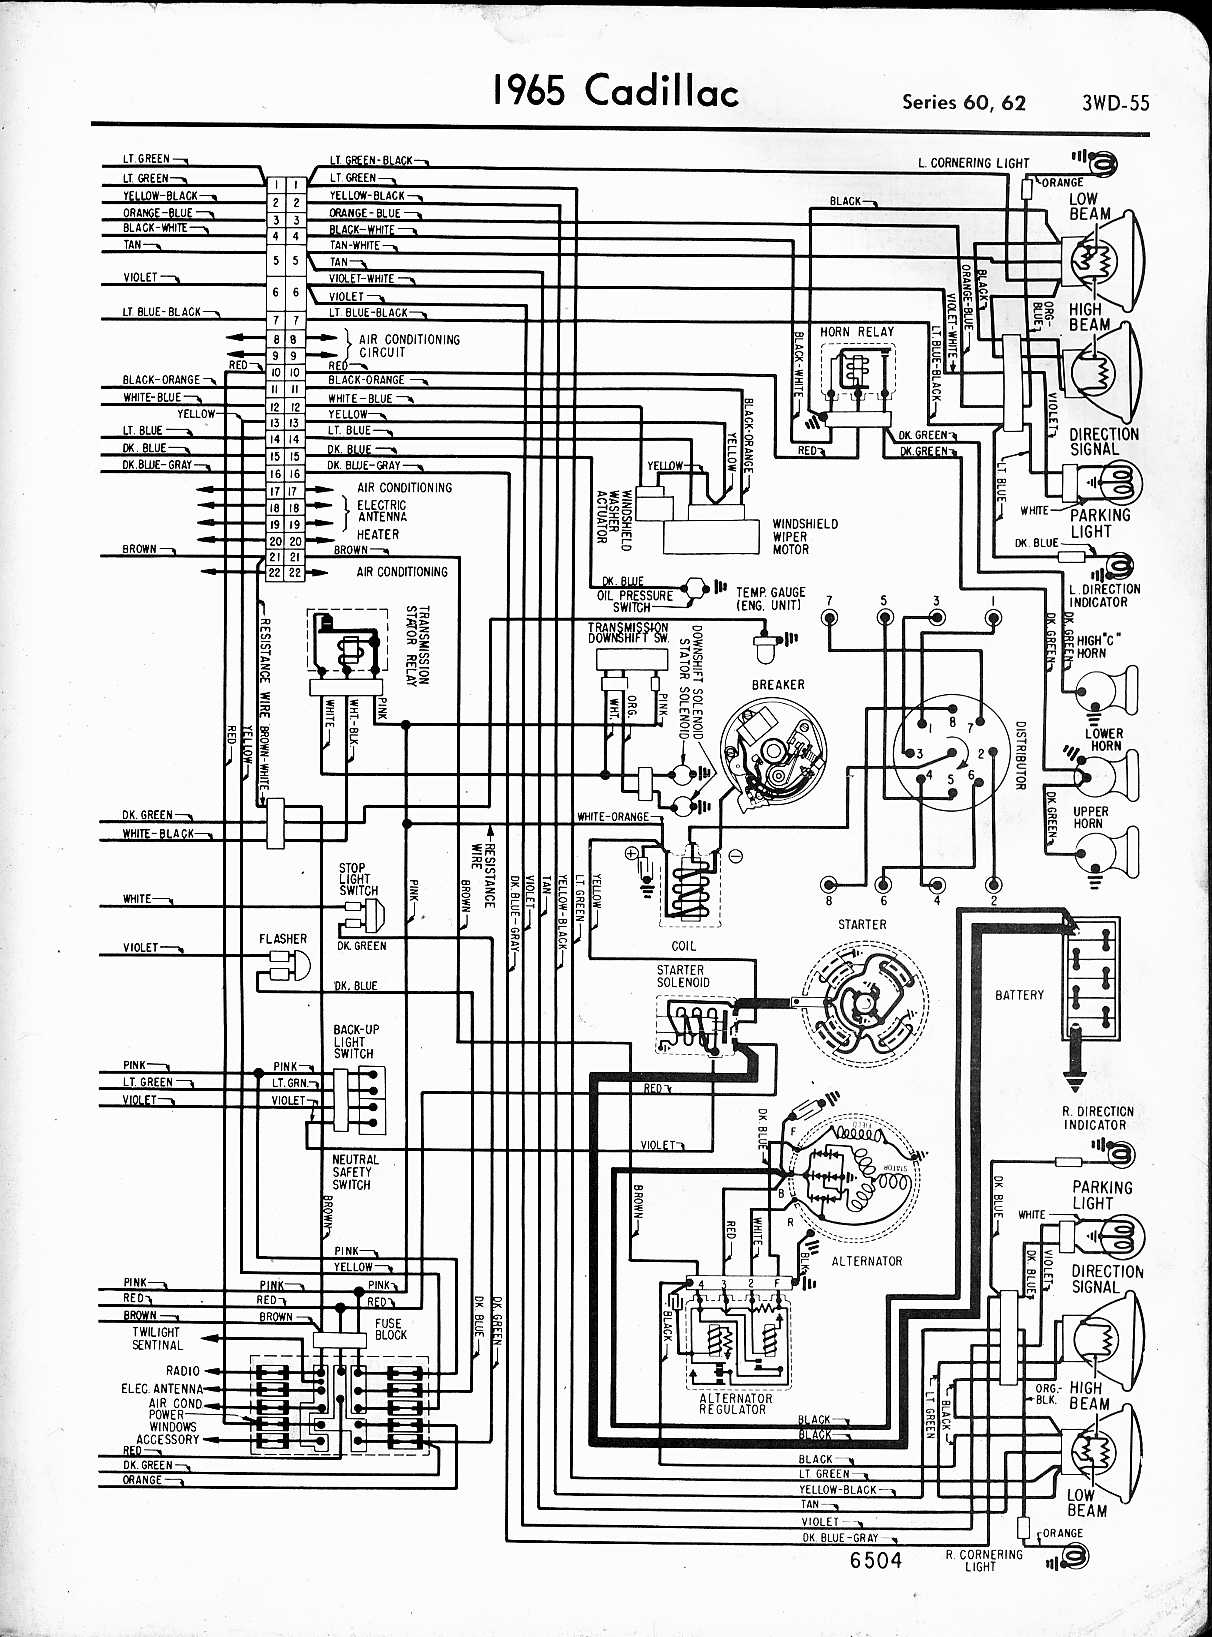 1964 cadillac wiring diagram all wiring diagram oldcarmanualproject com tocmp wiring 5765wirin cadillac 1964 engine wiring diagram 1964 cadillac wiring diagram